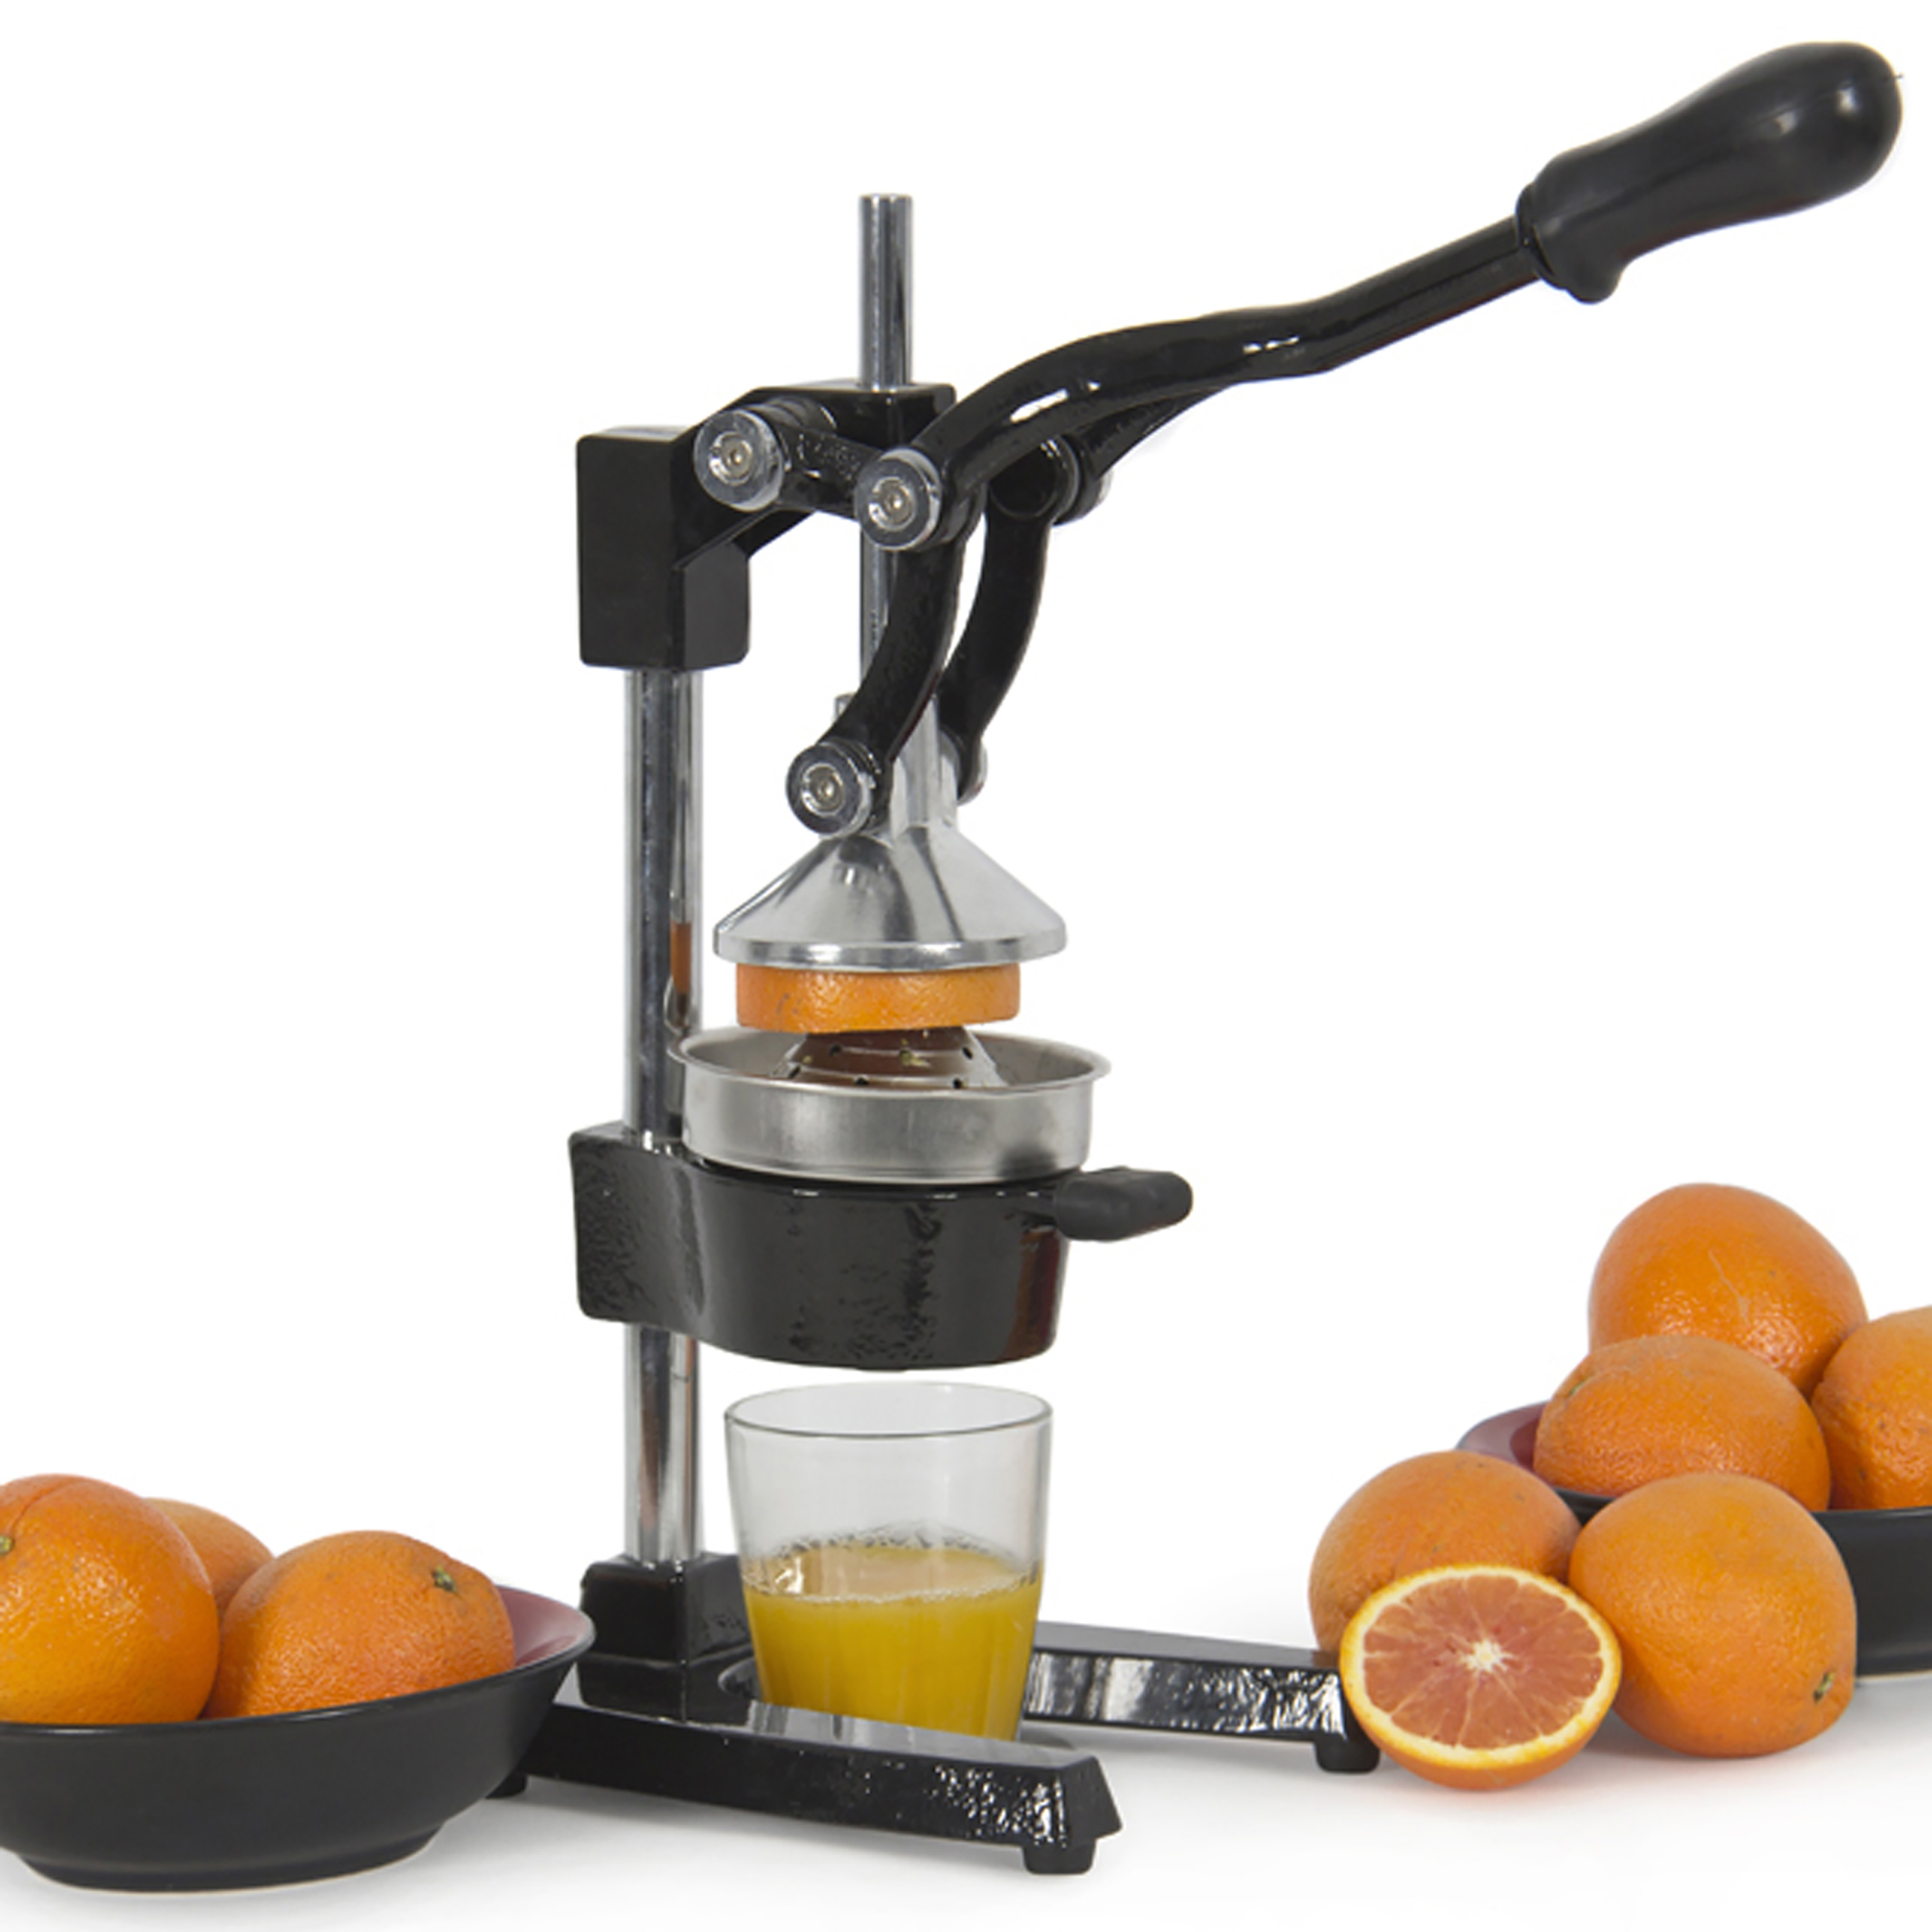 Fruit Juicer Pro lemon Orange Citrus Fresh Squeeze Juicer Commercial Unit New